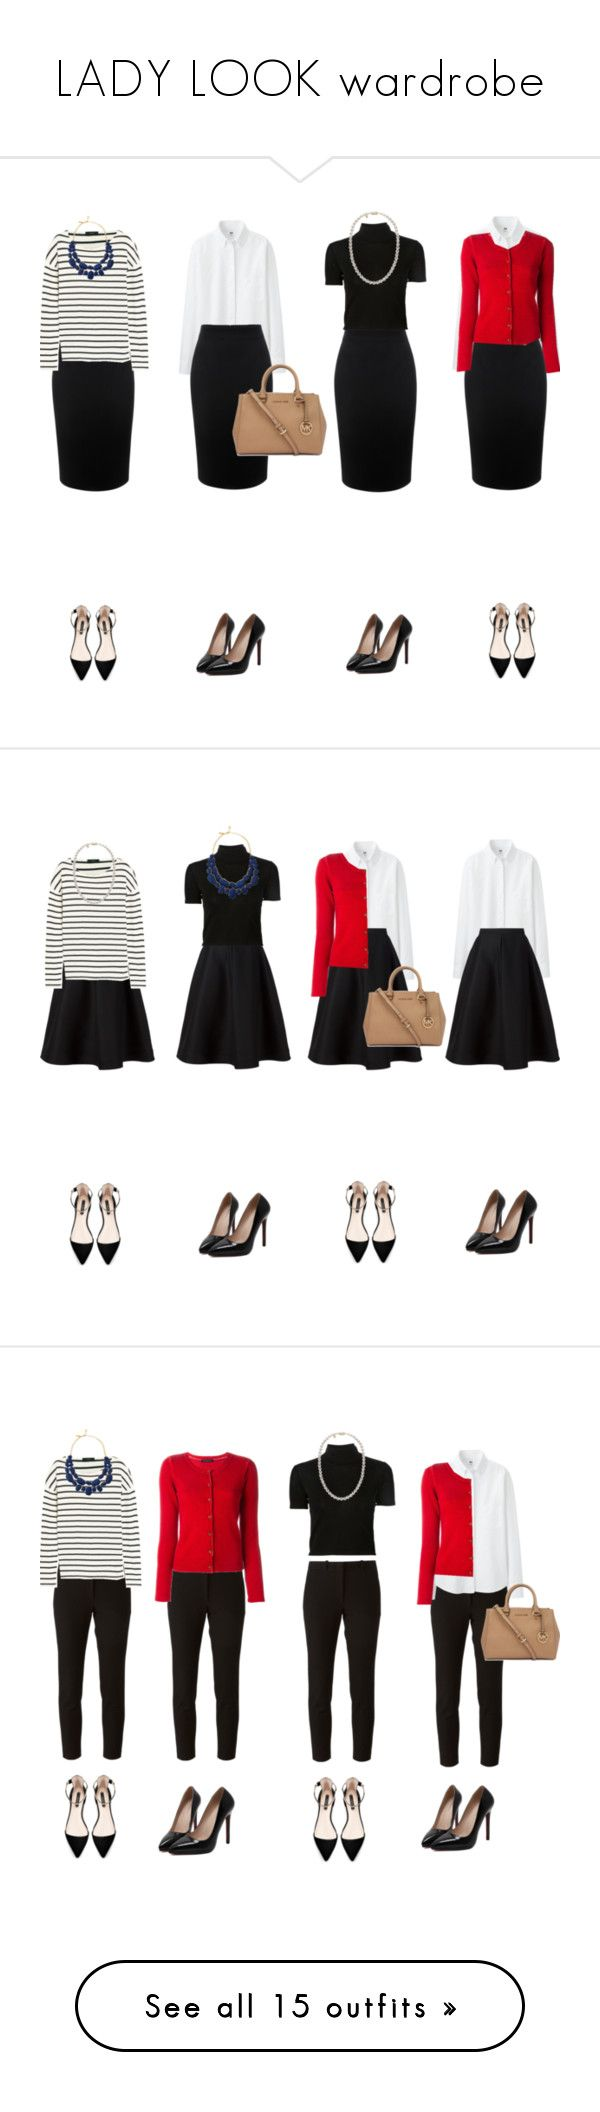 LADY LOOK wardrobe by unmmm on Polyvore featuring polyvore, fashion, style, Alexander McQueen, Uniqlo, J.Crew, Rosetta Getty, Samantha Sung, Zara, Kate Spade, Mikimoto, Michael Kors, clothing, Vika Gazinskaya, Joseph, women's fashion, tops, sweaters, shirts, t-shirts, crop tops, black, cropped shirts, cotton turtleneck, shirt sweater, cotton turtleneck shirts, cotton sweaters, long sleeves, blue, blue long sleeve shirt, striped long sleeve top, striped long sleeve shirt, long sleeve tops…